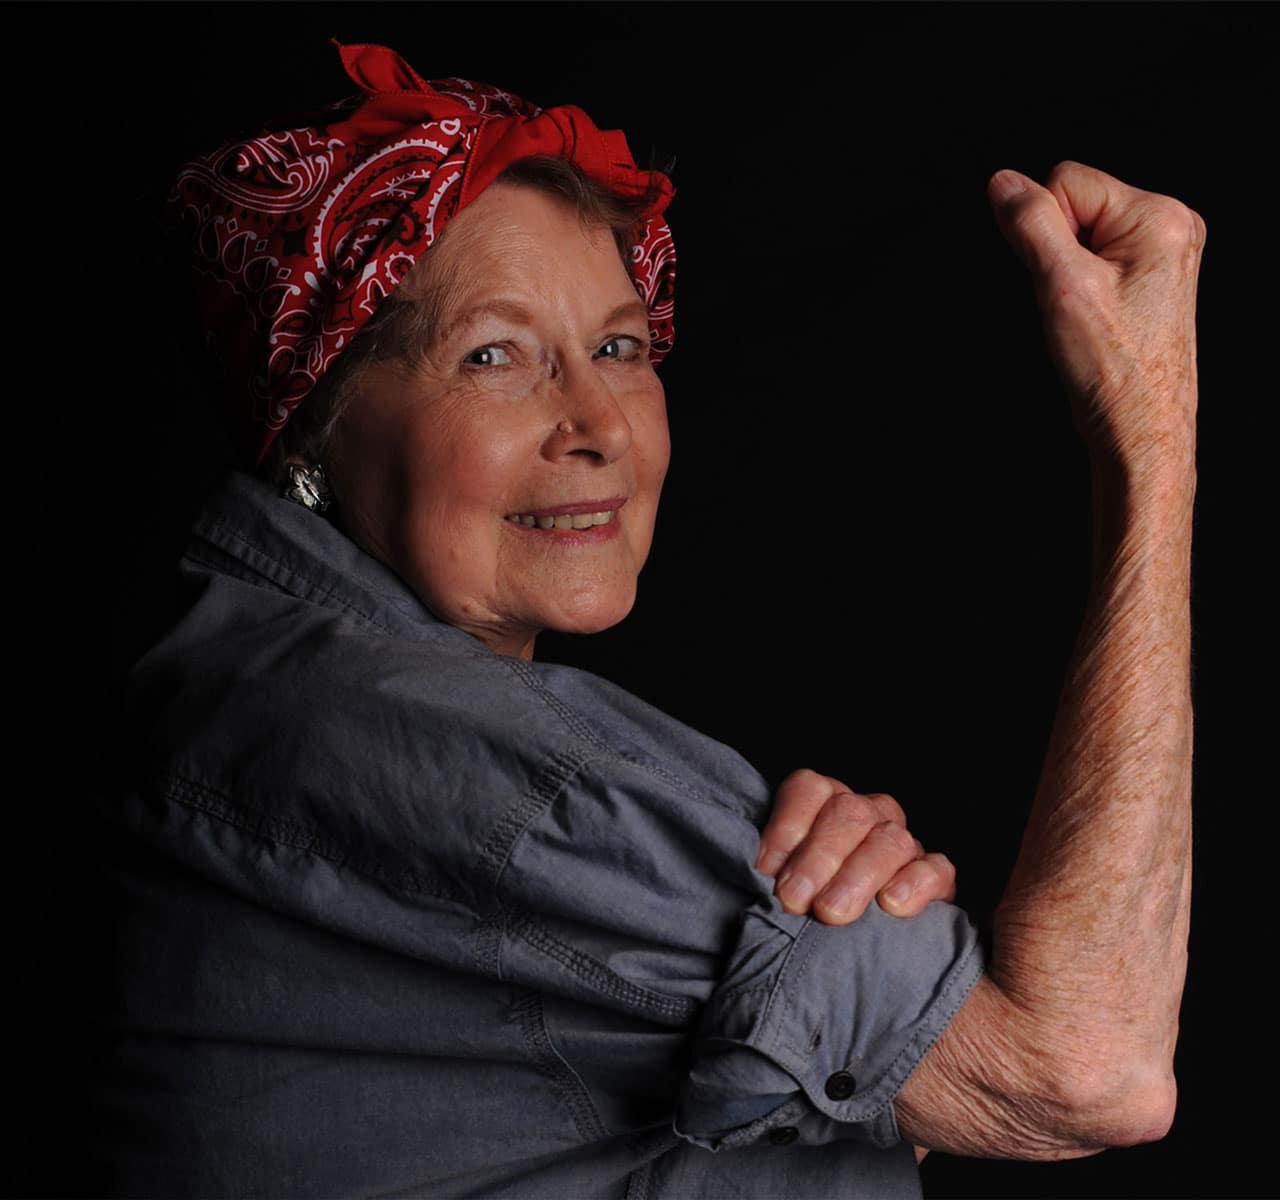 "Mary Ann Morden flexes her muscle in honor of ""Rosie the Riveter,"" an iconic 1942 image of working women during World War II at Little Rock Air Force Base, Ark. After being a school teacher for 30 years, Mary Ann now volunteers assisting military retirees from across the state of Arkansas."